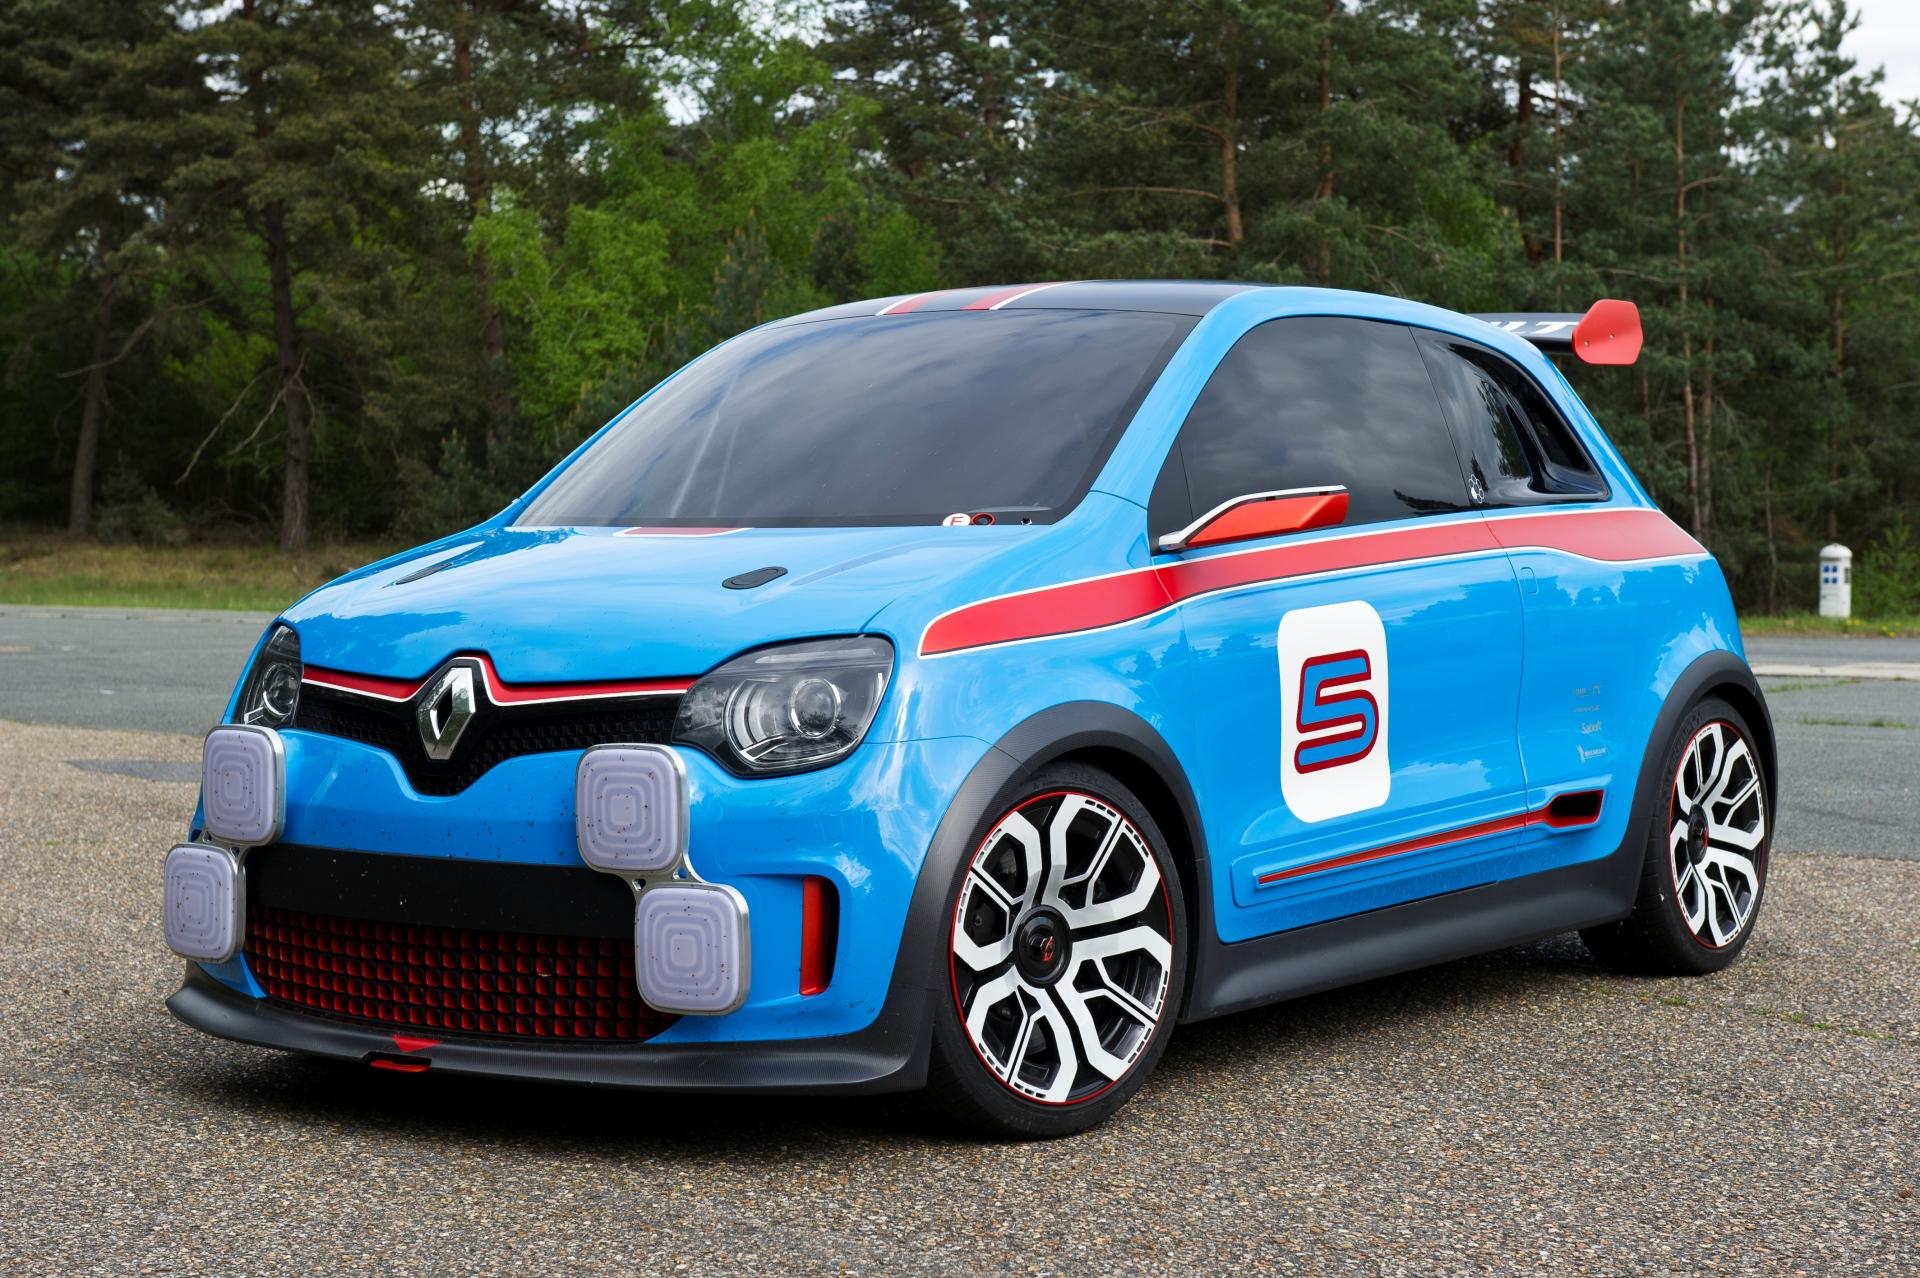 2013 Renault Twin Run Concept News And Information Research And Pricing